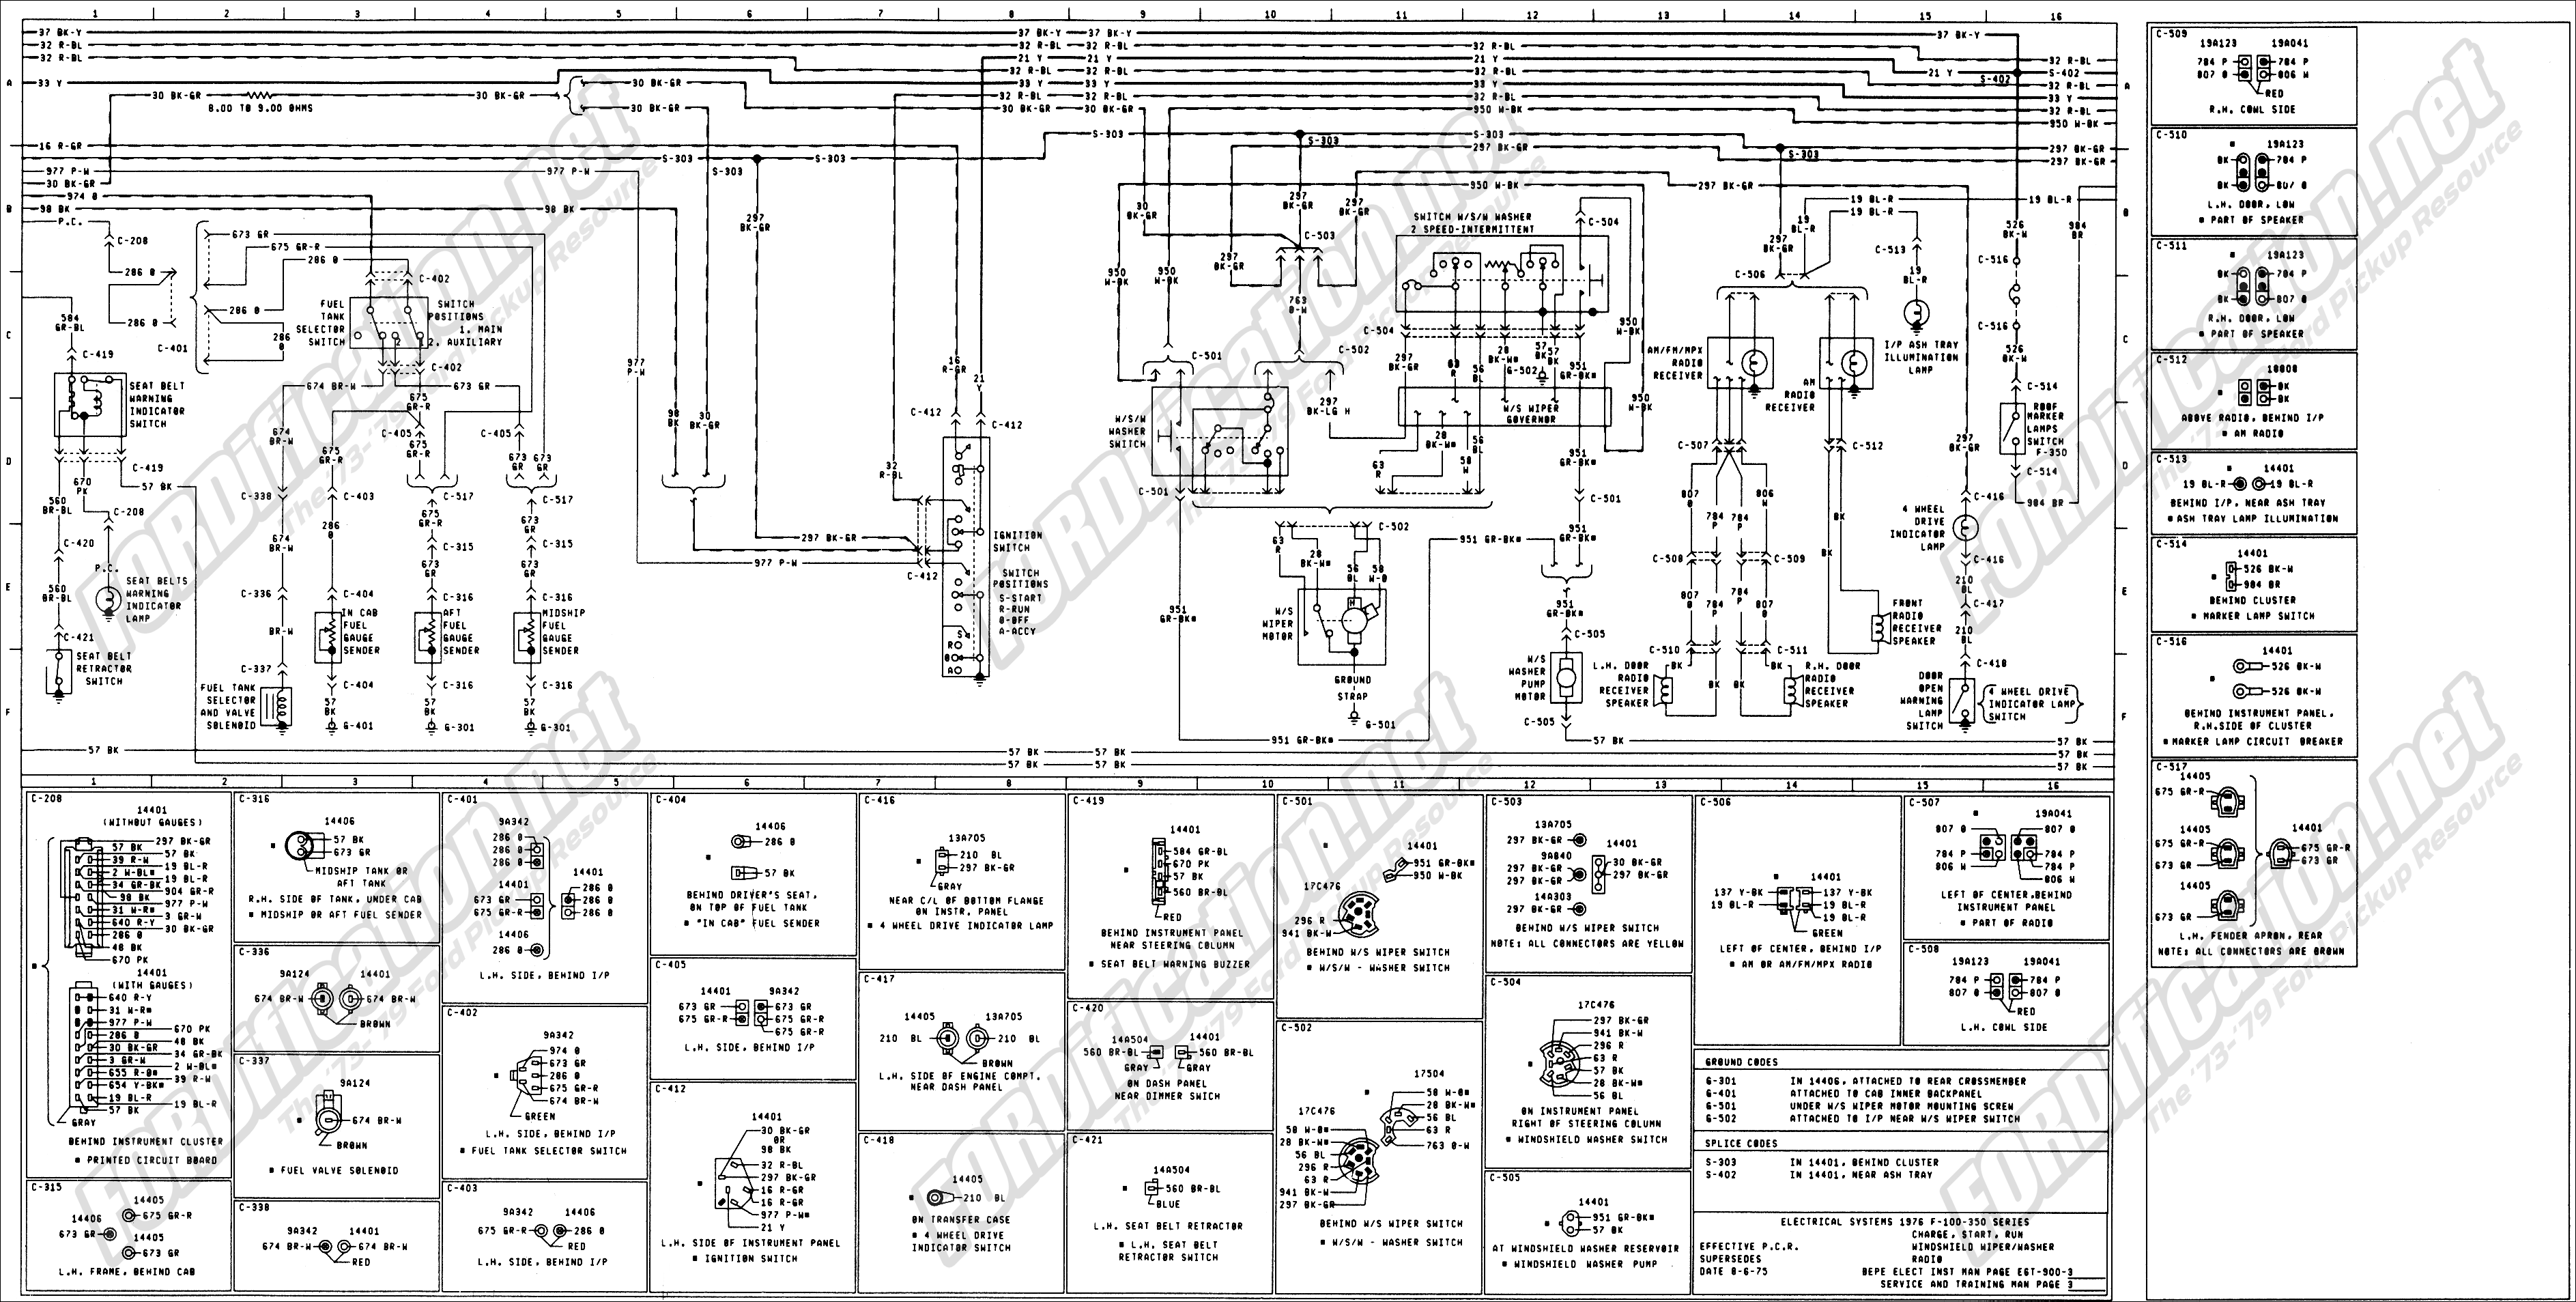 wiring_76master_3of9 1973 f100 wiring diagram wiring diagram data